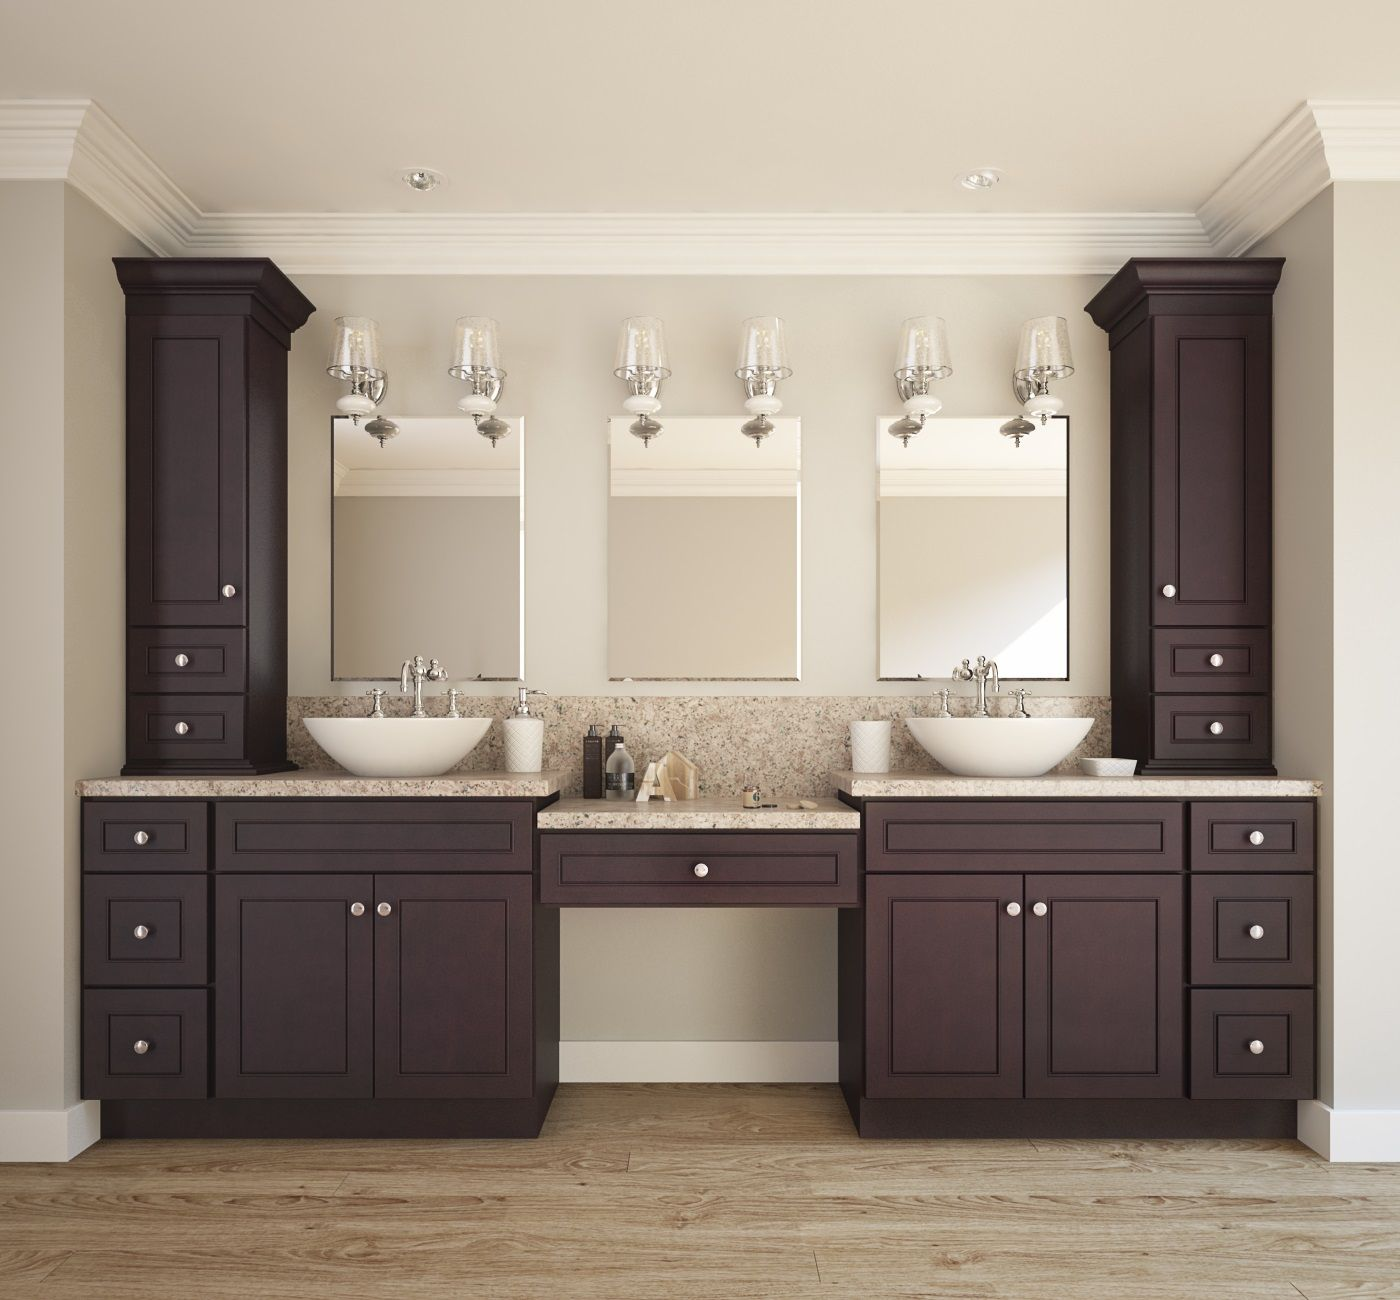 Espresso bean bathroom vanity rta bathroom vanities in